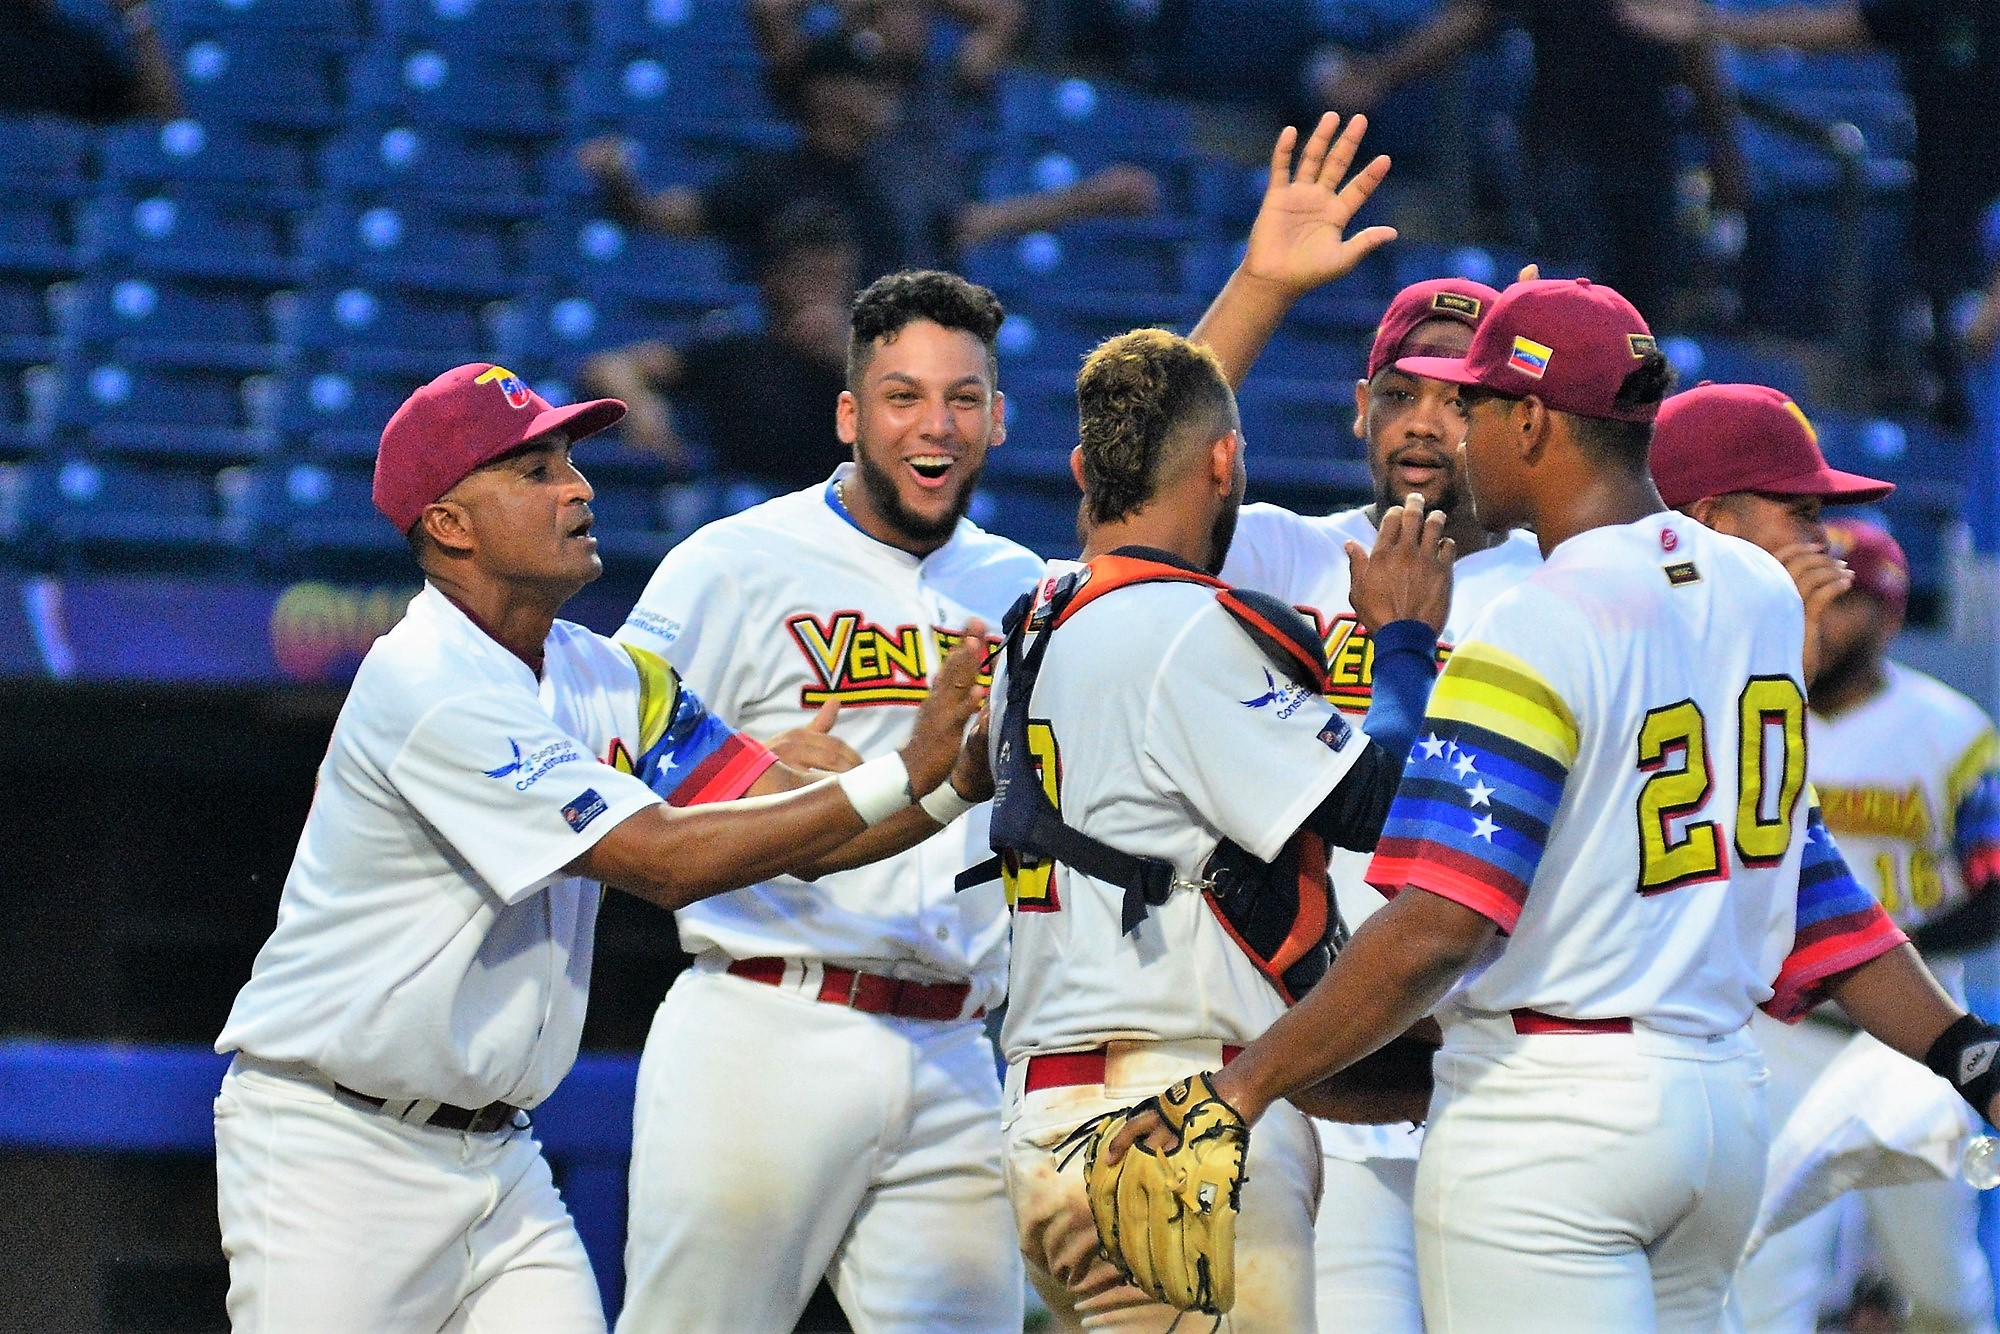 Venezuela's pklayers congratulate catcher Georvic Perez